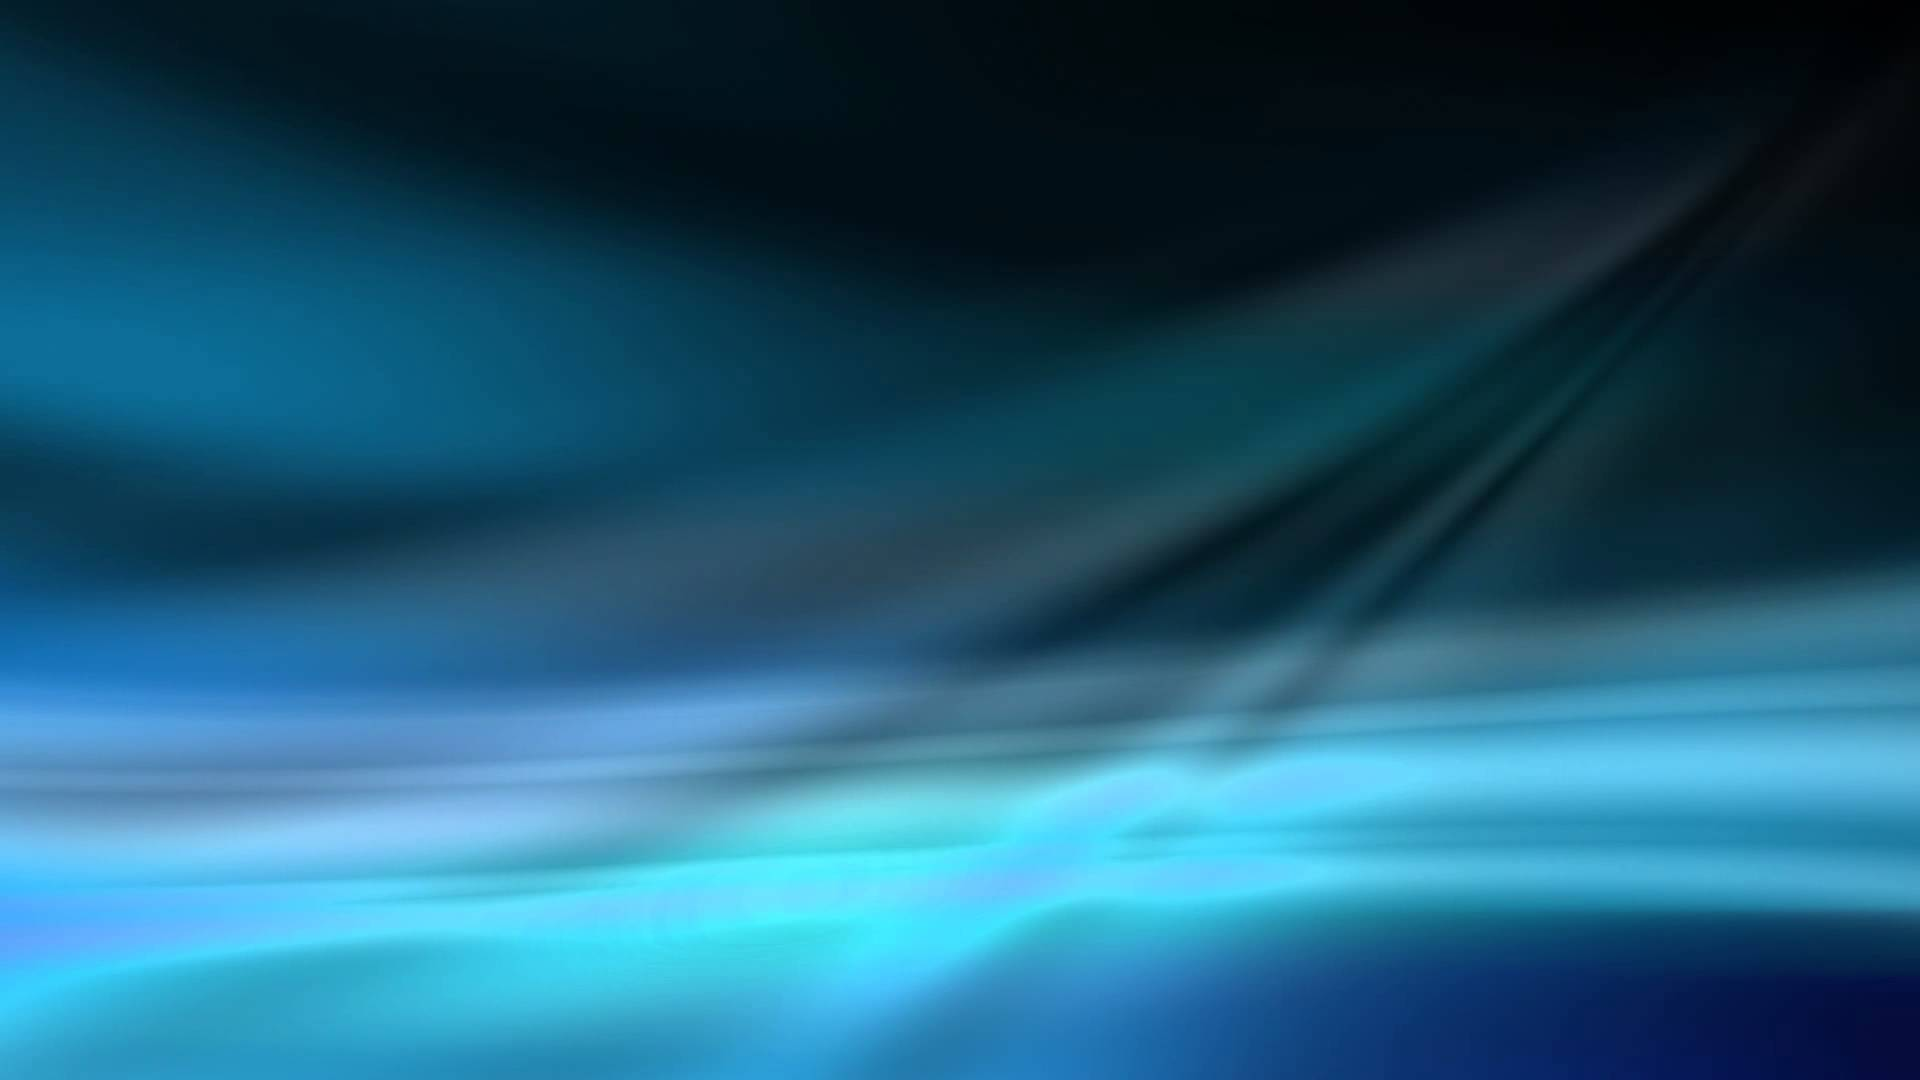 Free Abstract Fractal Background Loop Stock Video Download - YouTube